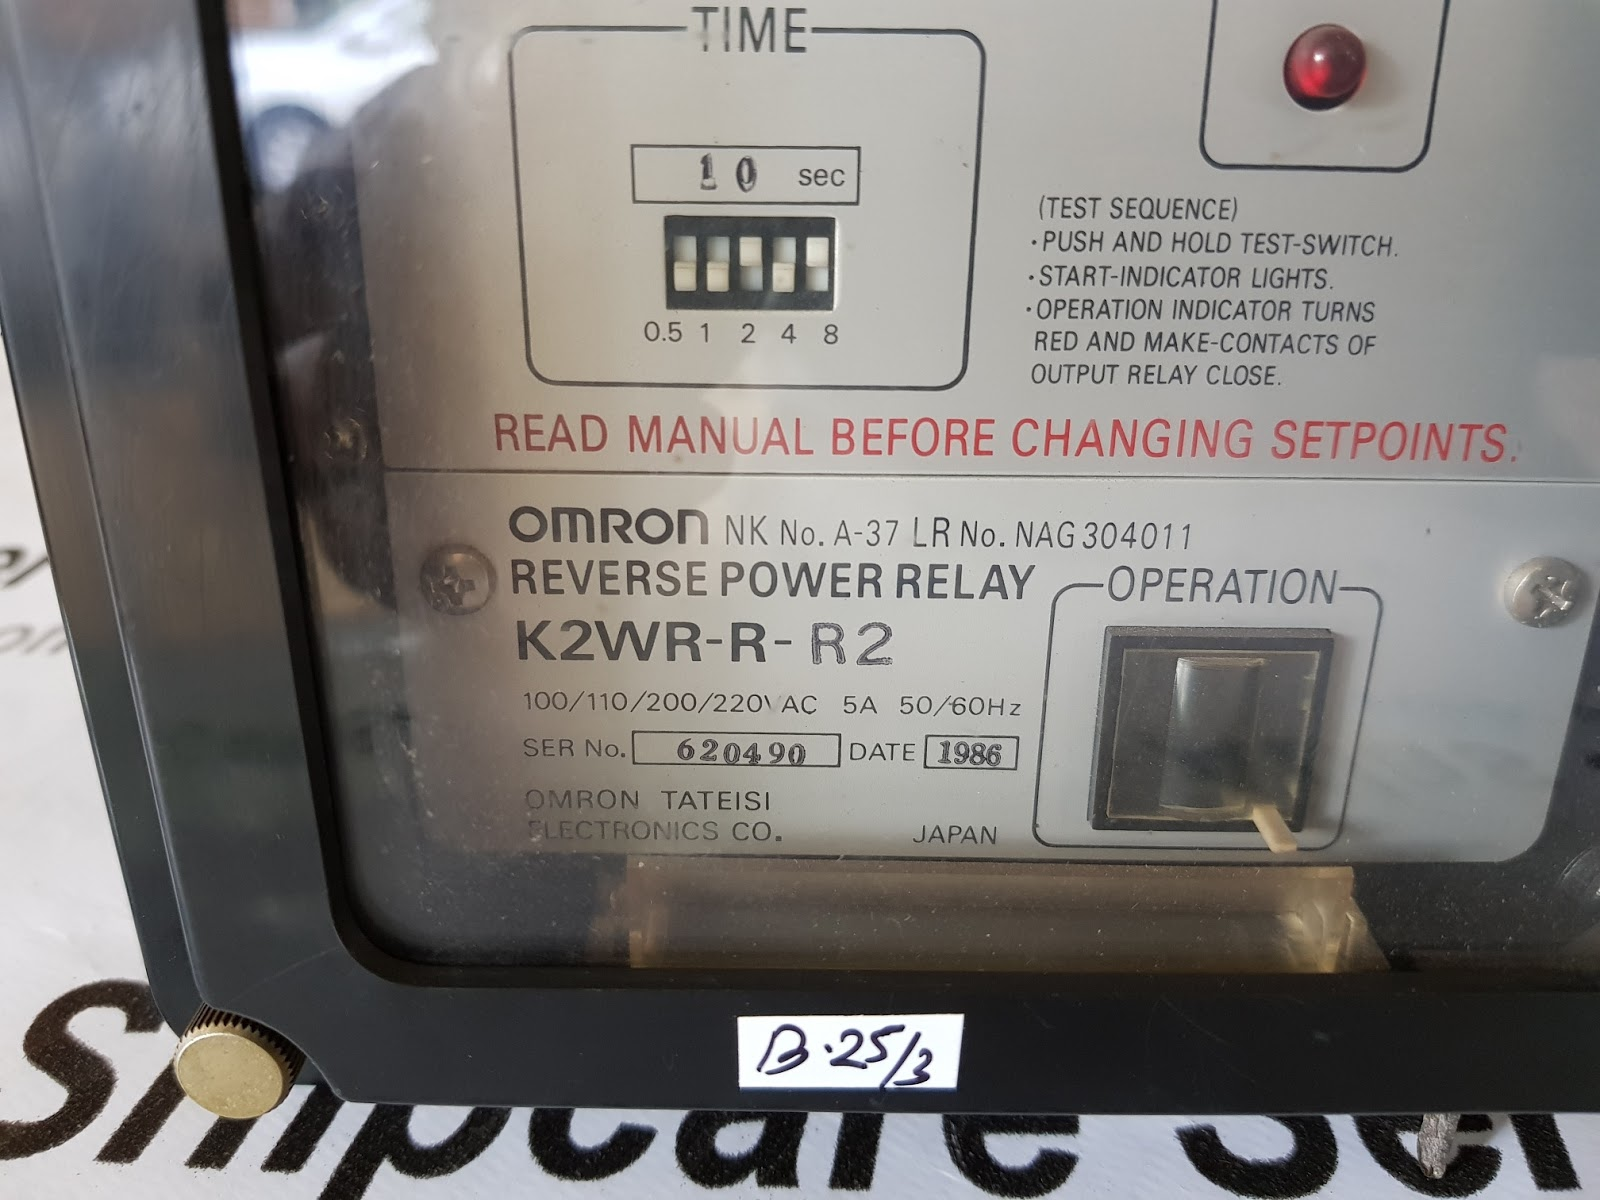 Omron Reverse Power Relay K2wr R R2 Atlas Shipcare Services Switch Type 100 110 200 220 Vac 5a 50 60 Hz Date 1986 Tateisi Electronicsco Made In Japan